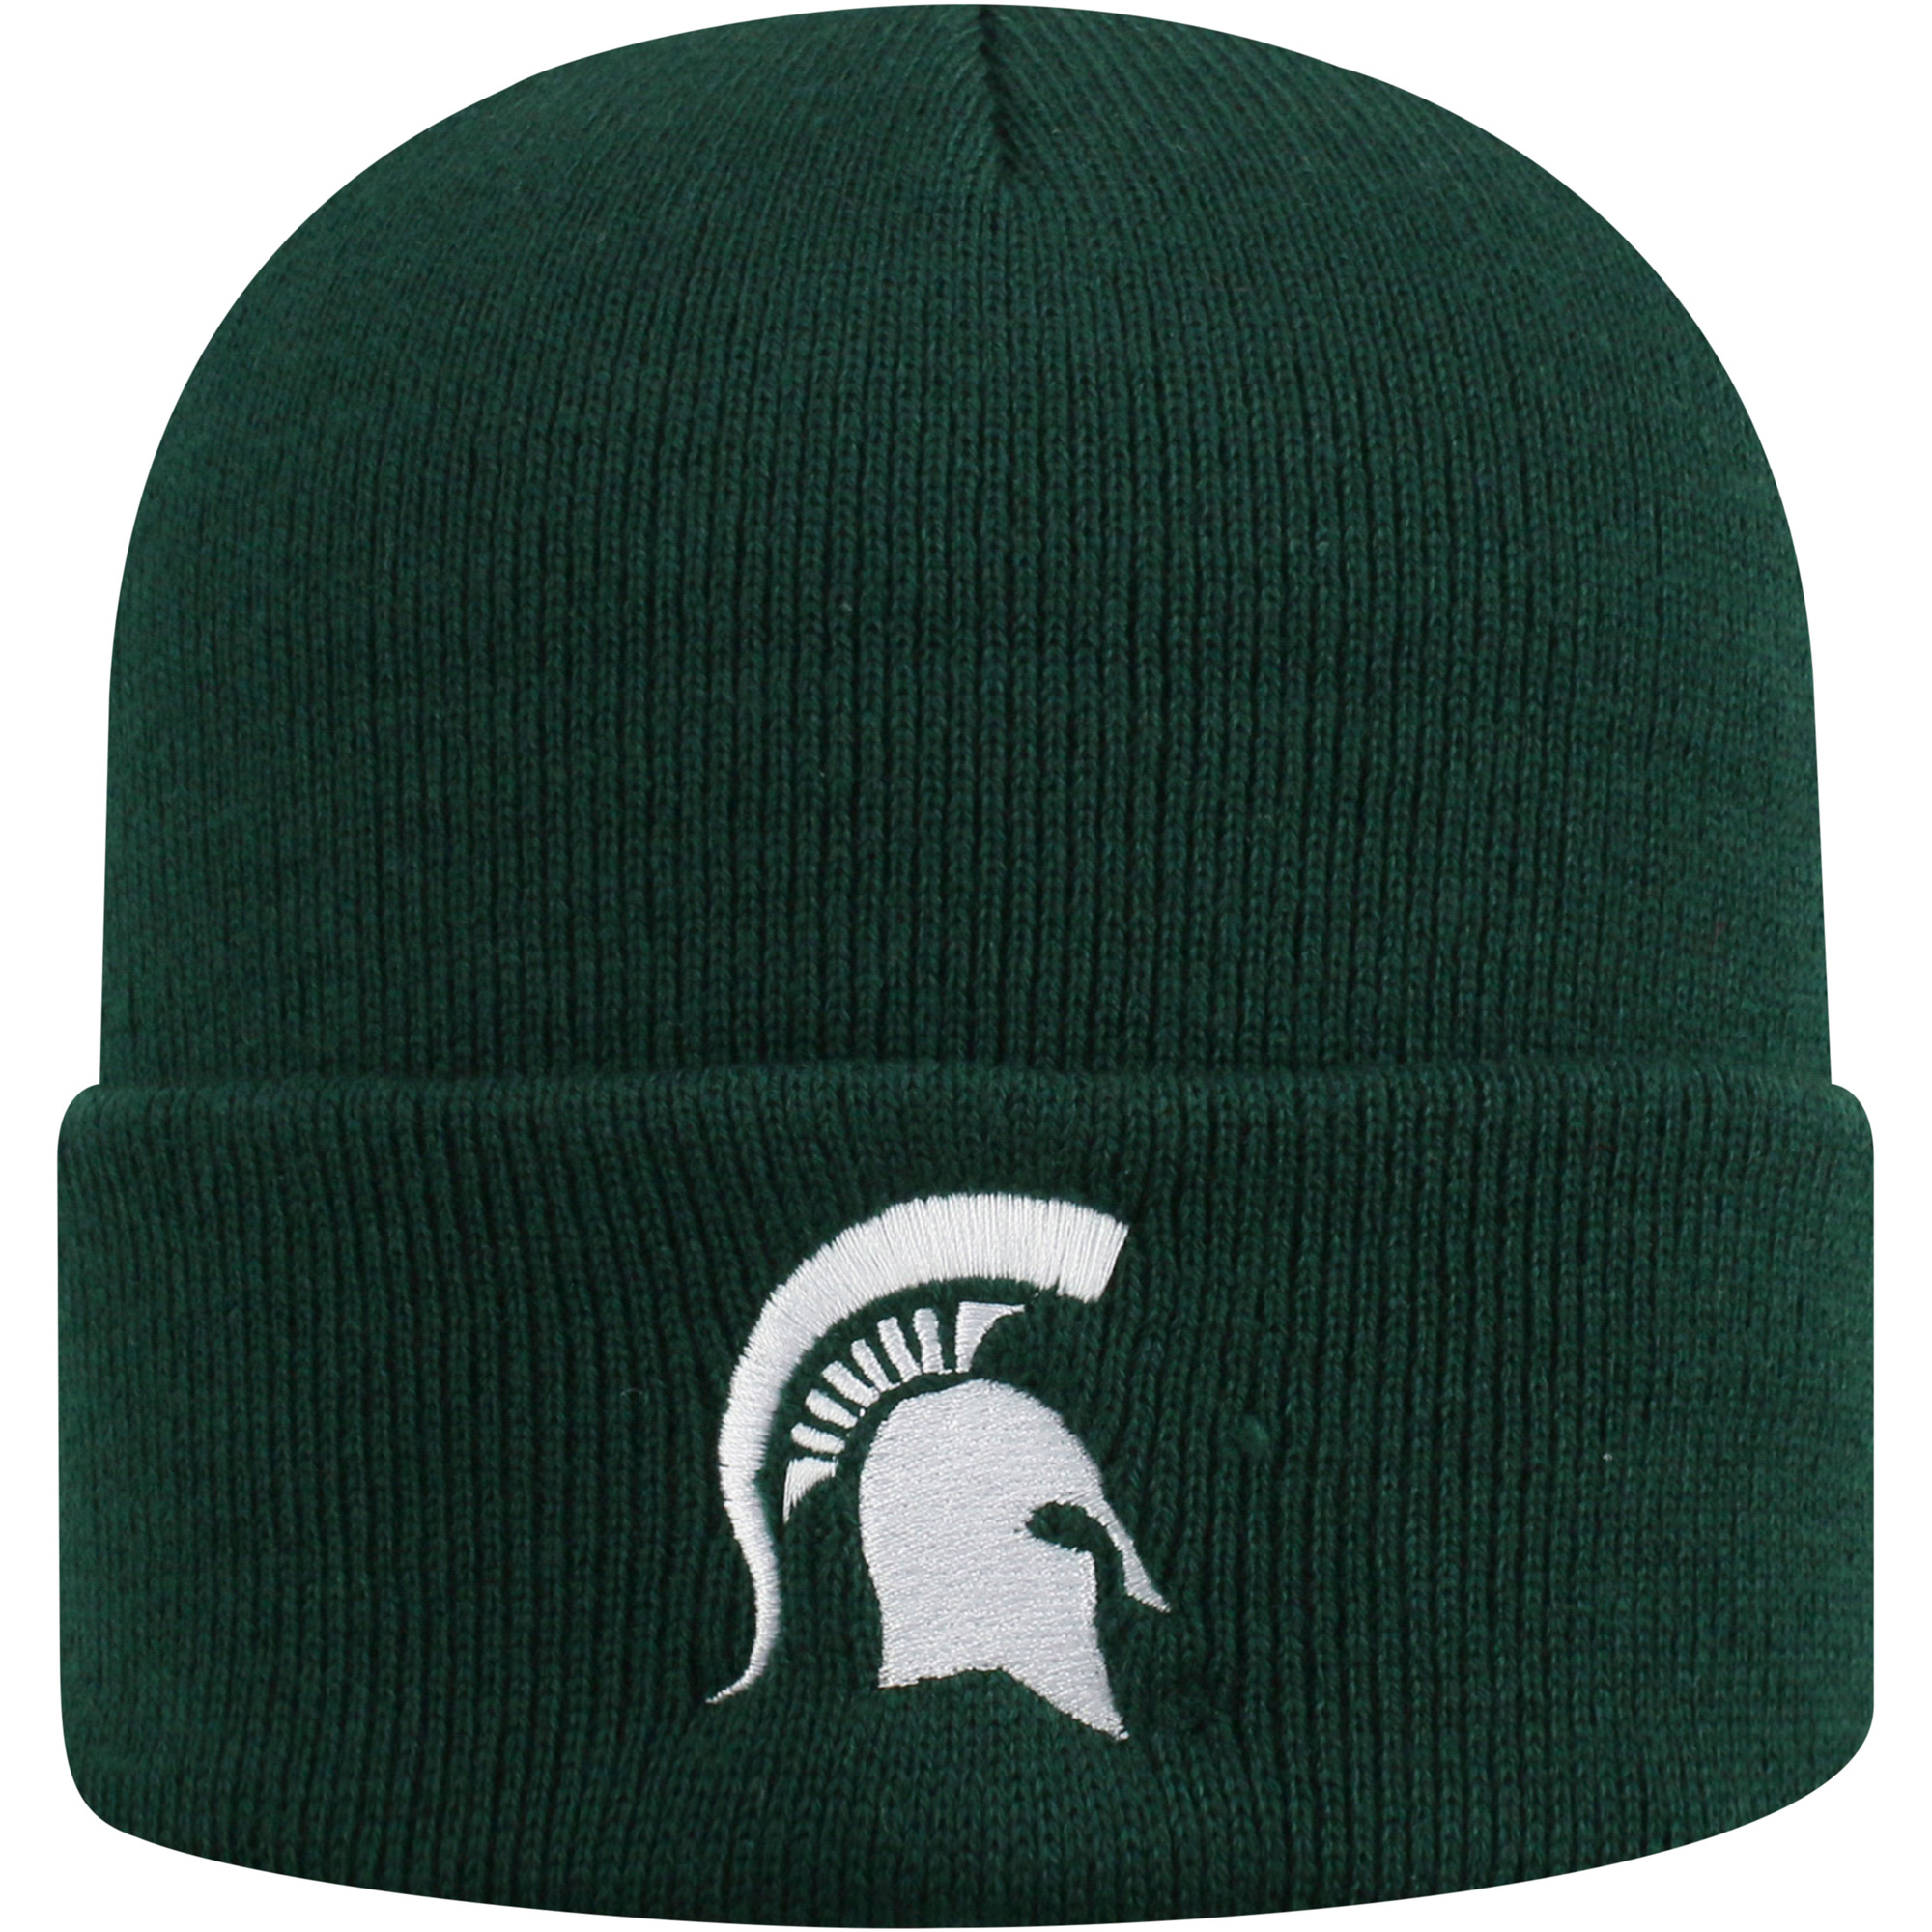 Youth Russell Green Michigan State Spartans Team Cuffed Knit Hat - OSFA